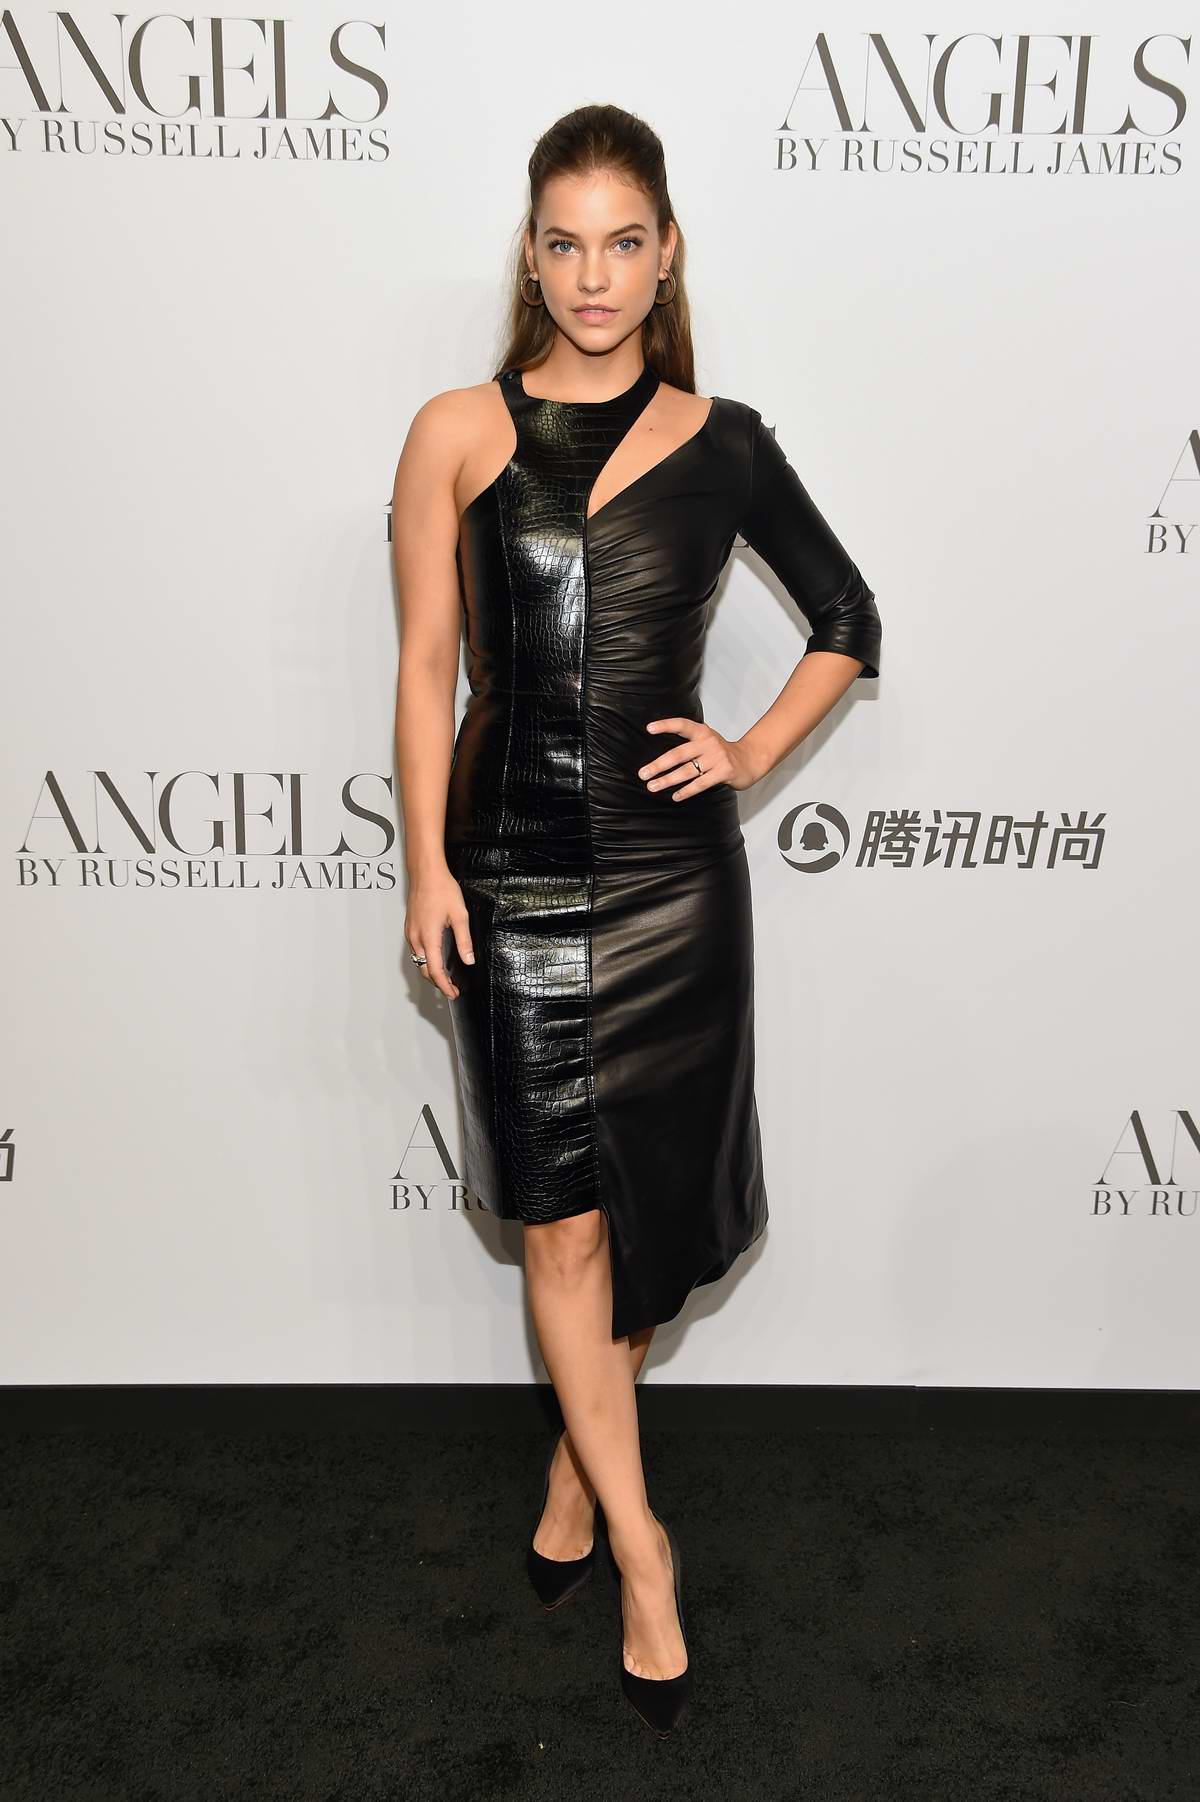 Barbara Palvin attends 'ANGELS' by Russell James Book Launch And Exhibit in New York City